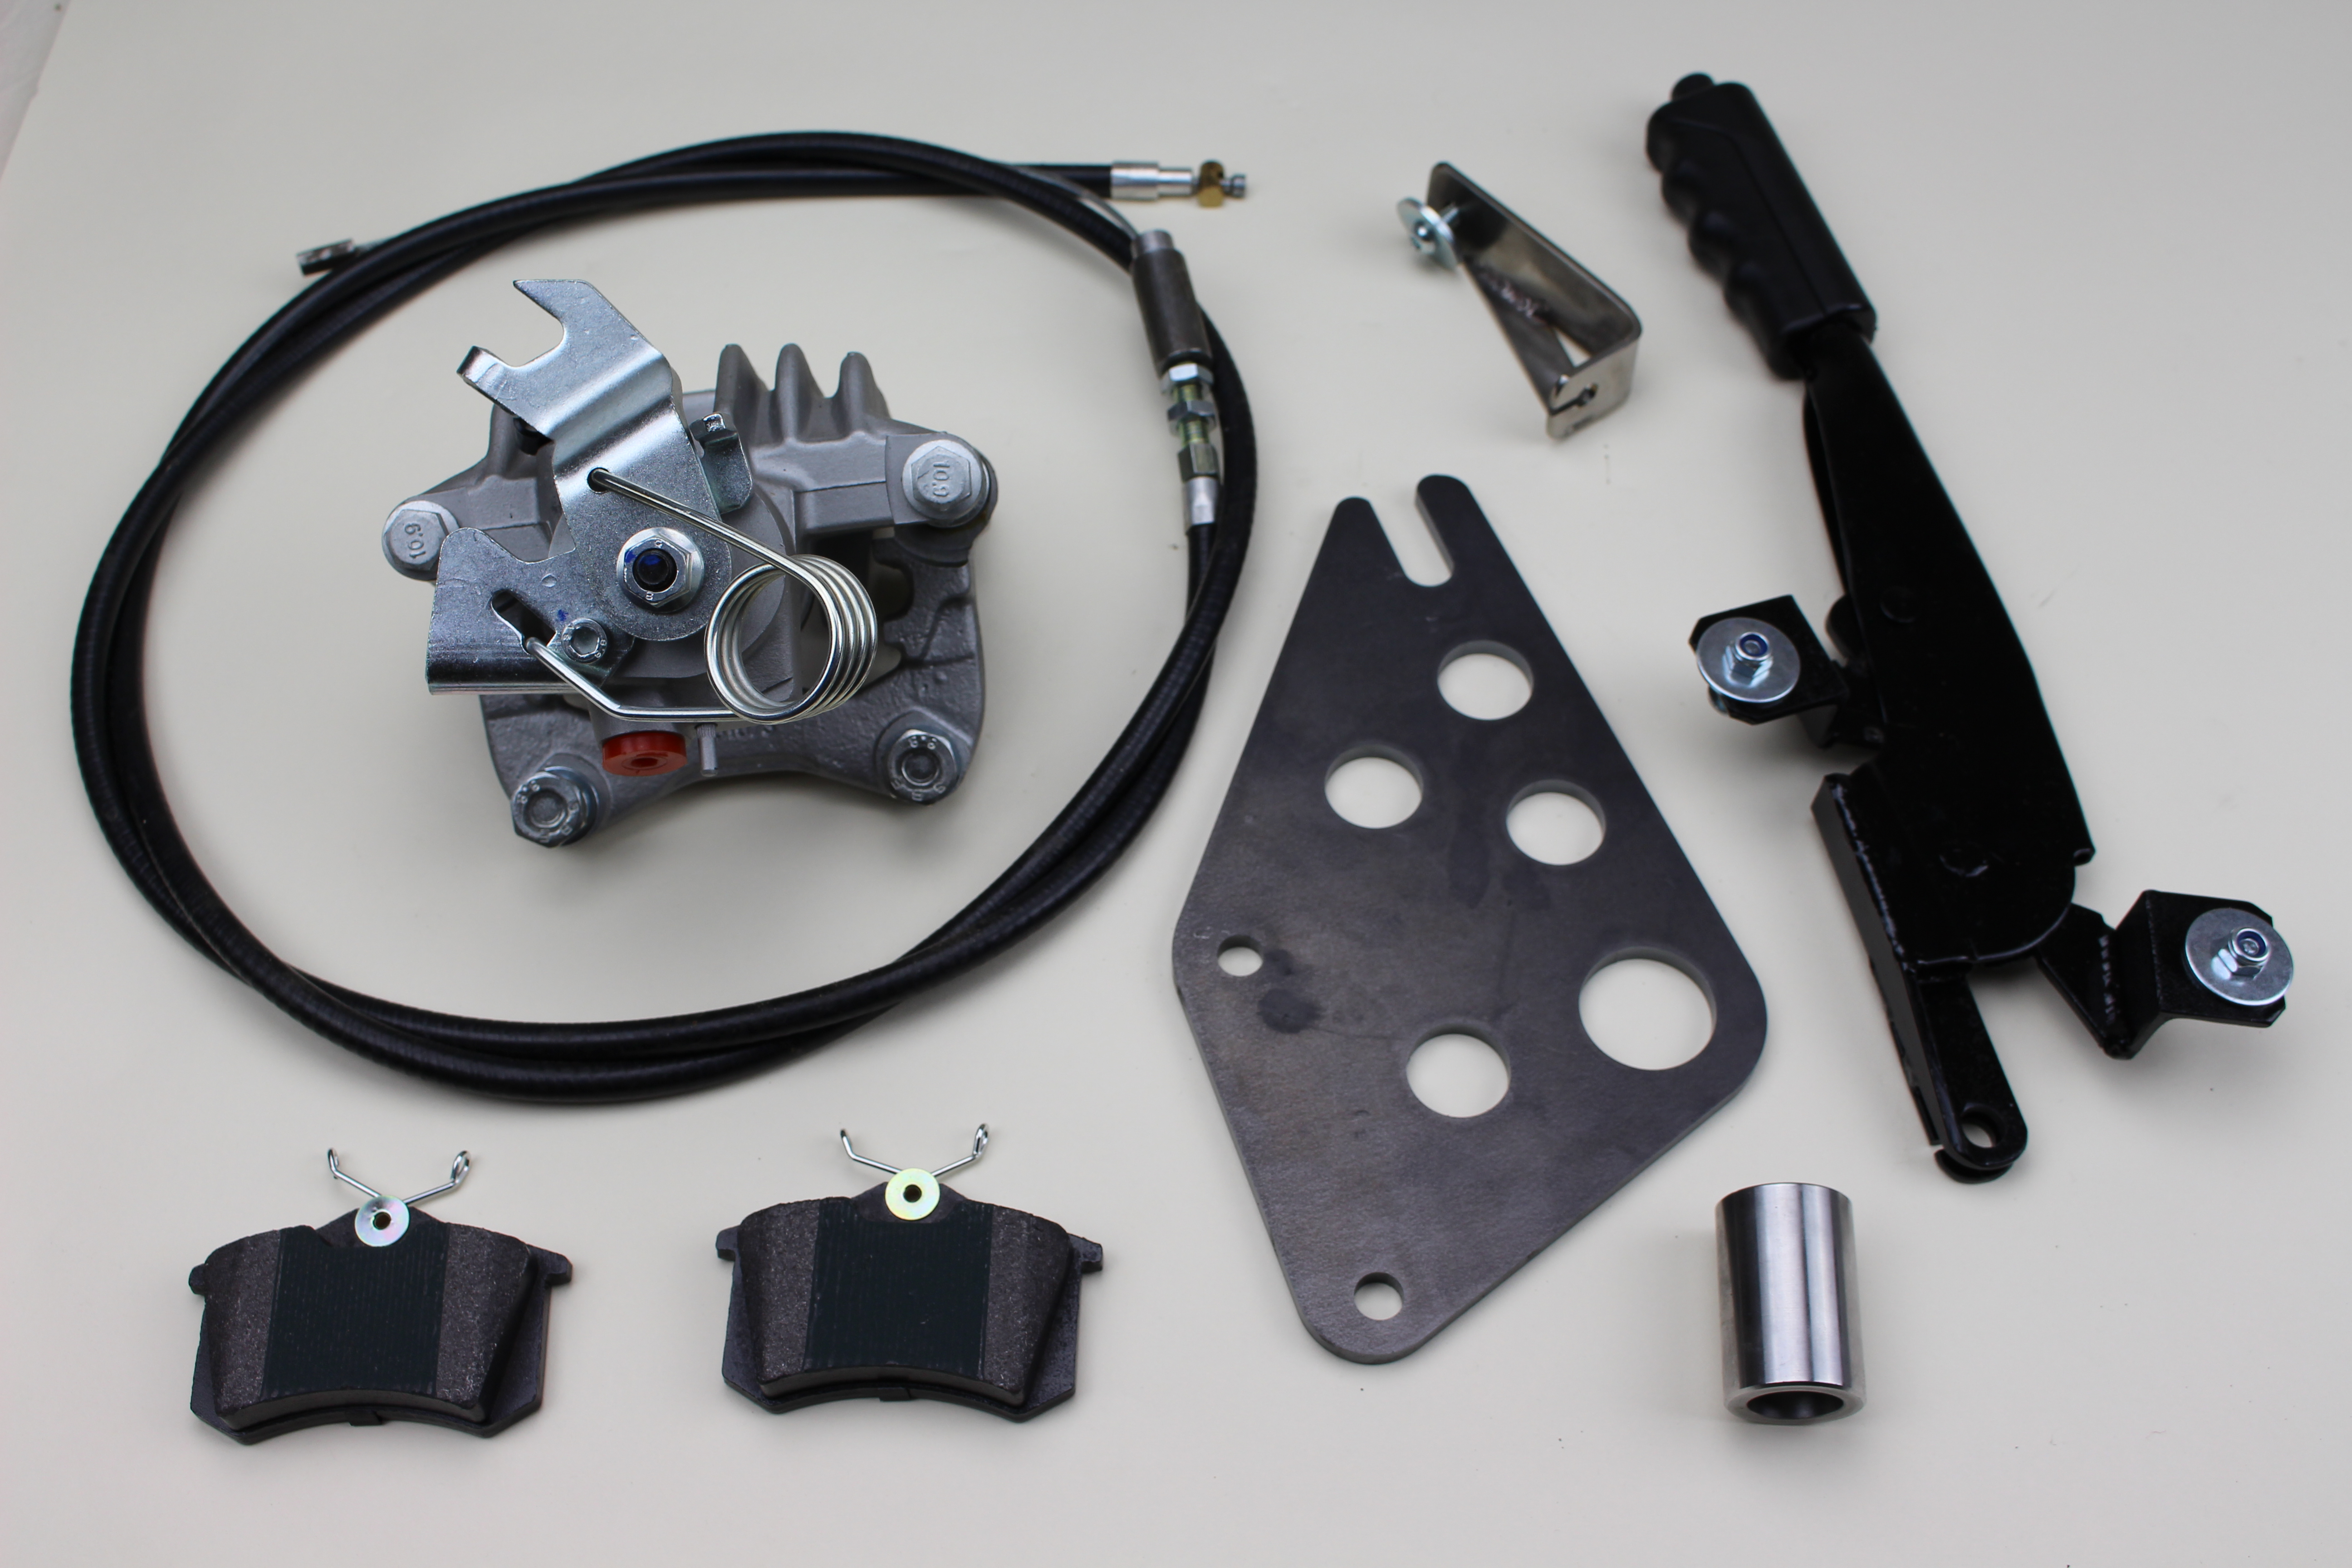 Std (rear) parking brake assembly, hydro-mechanical caliper providing road wheel brake and parking brake, Supplied with universal mounting bracket for versatile fitment, Adaptable to all Triking models with Guzzi rear wheel and disc brake. Components